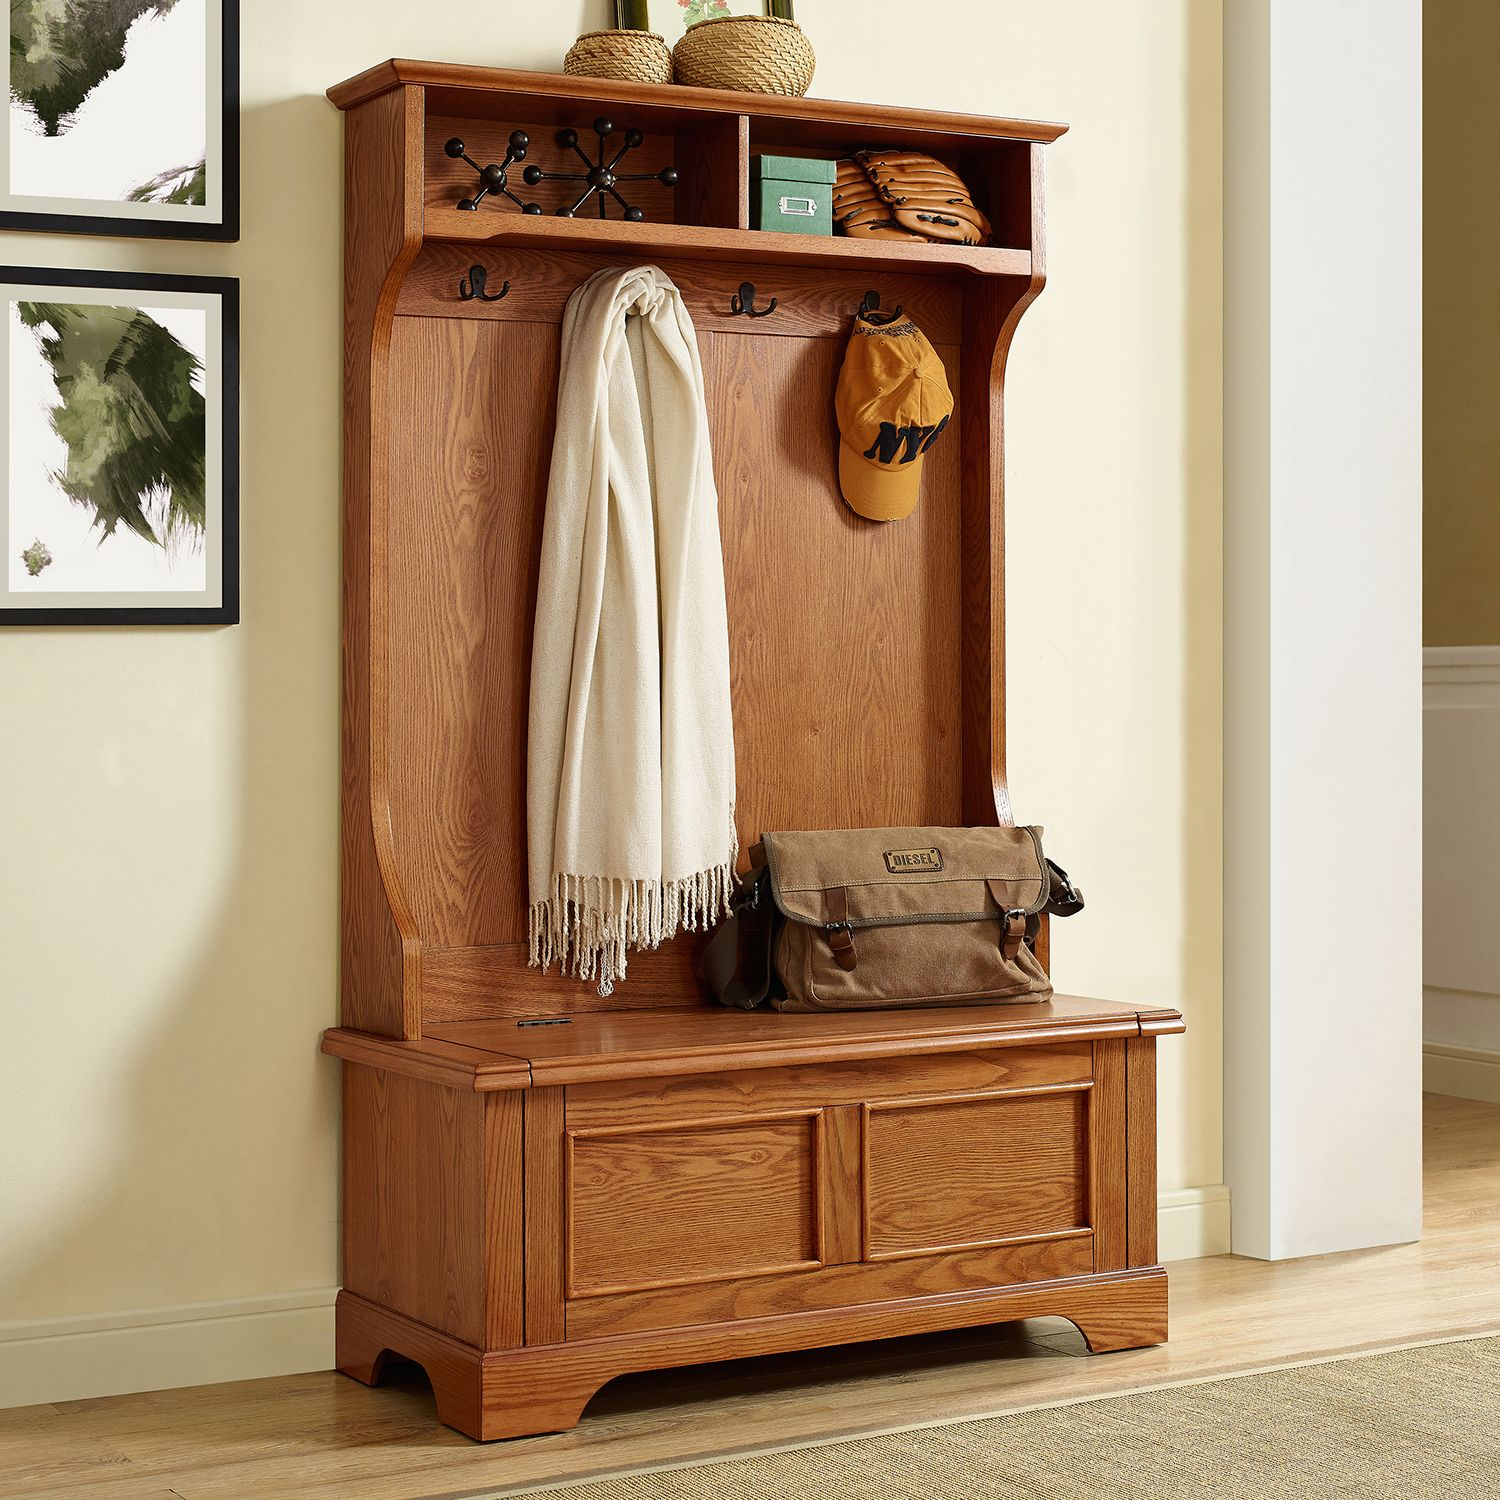 Regular. $559.99. Crosley Furniture Campbell Hall Tree Storage Bench